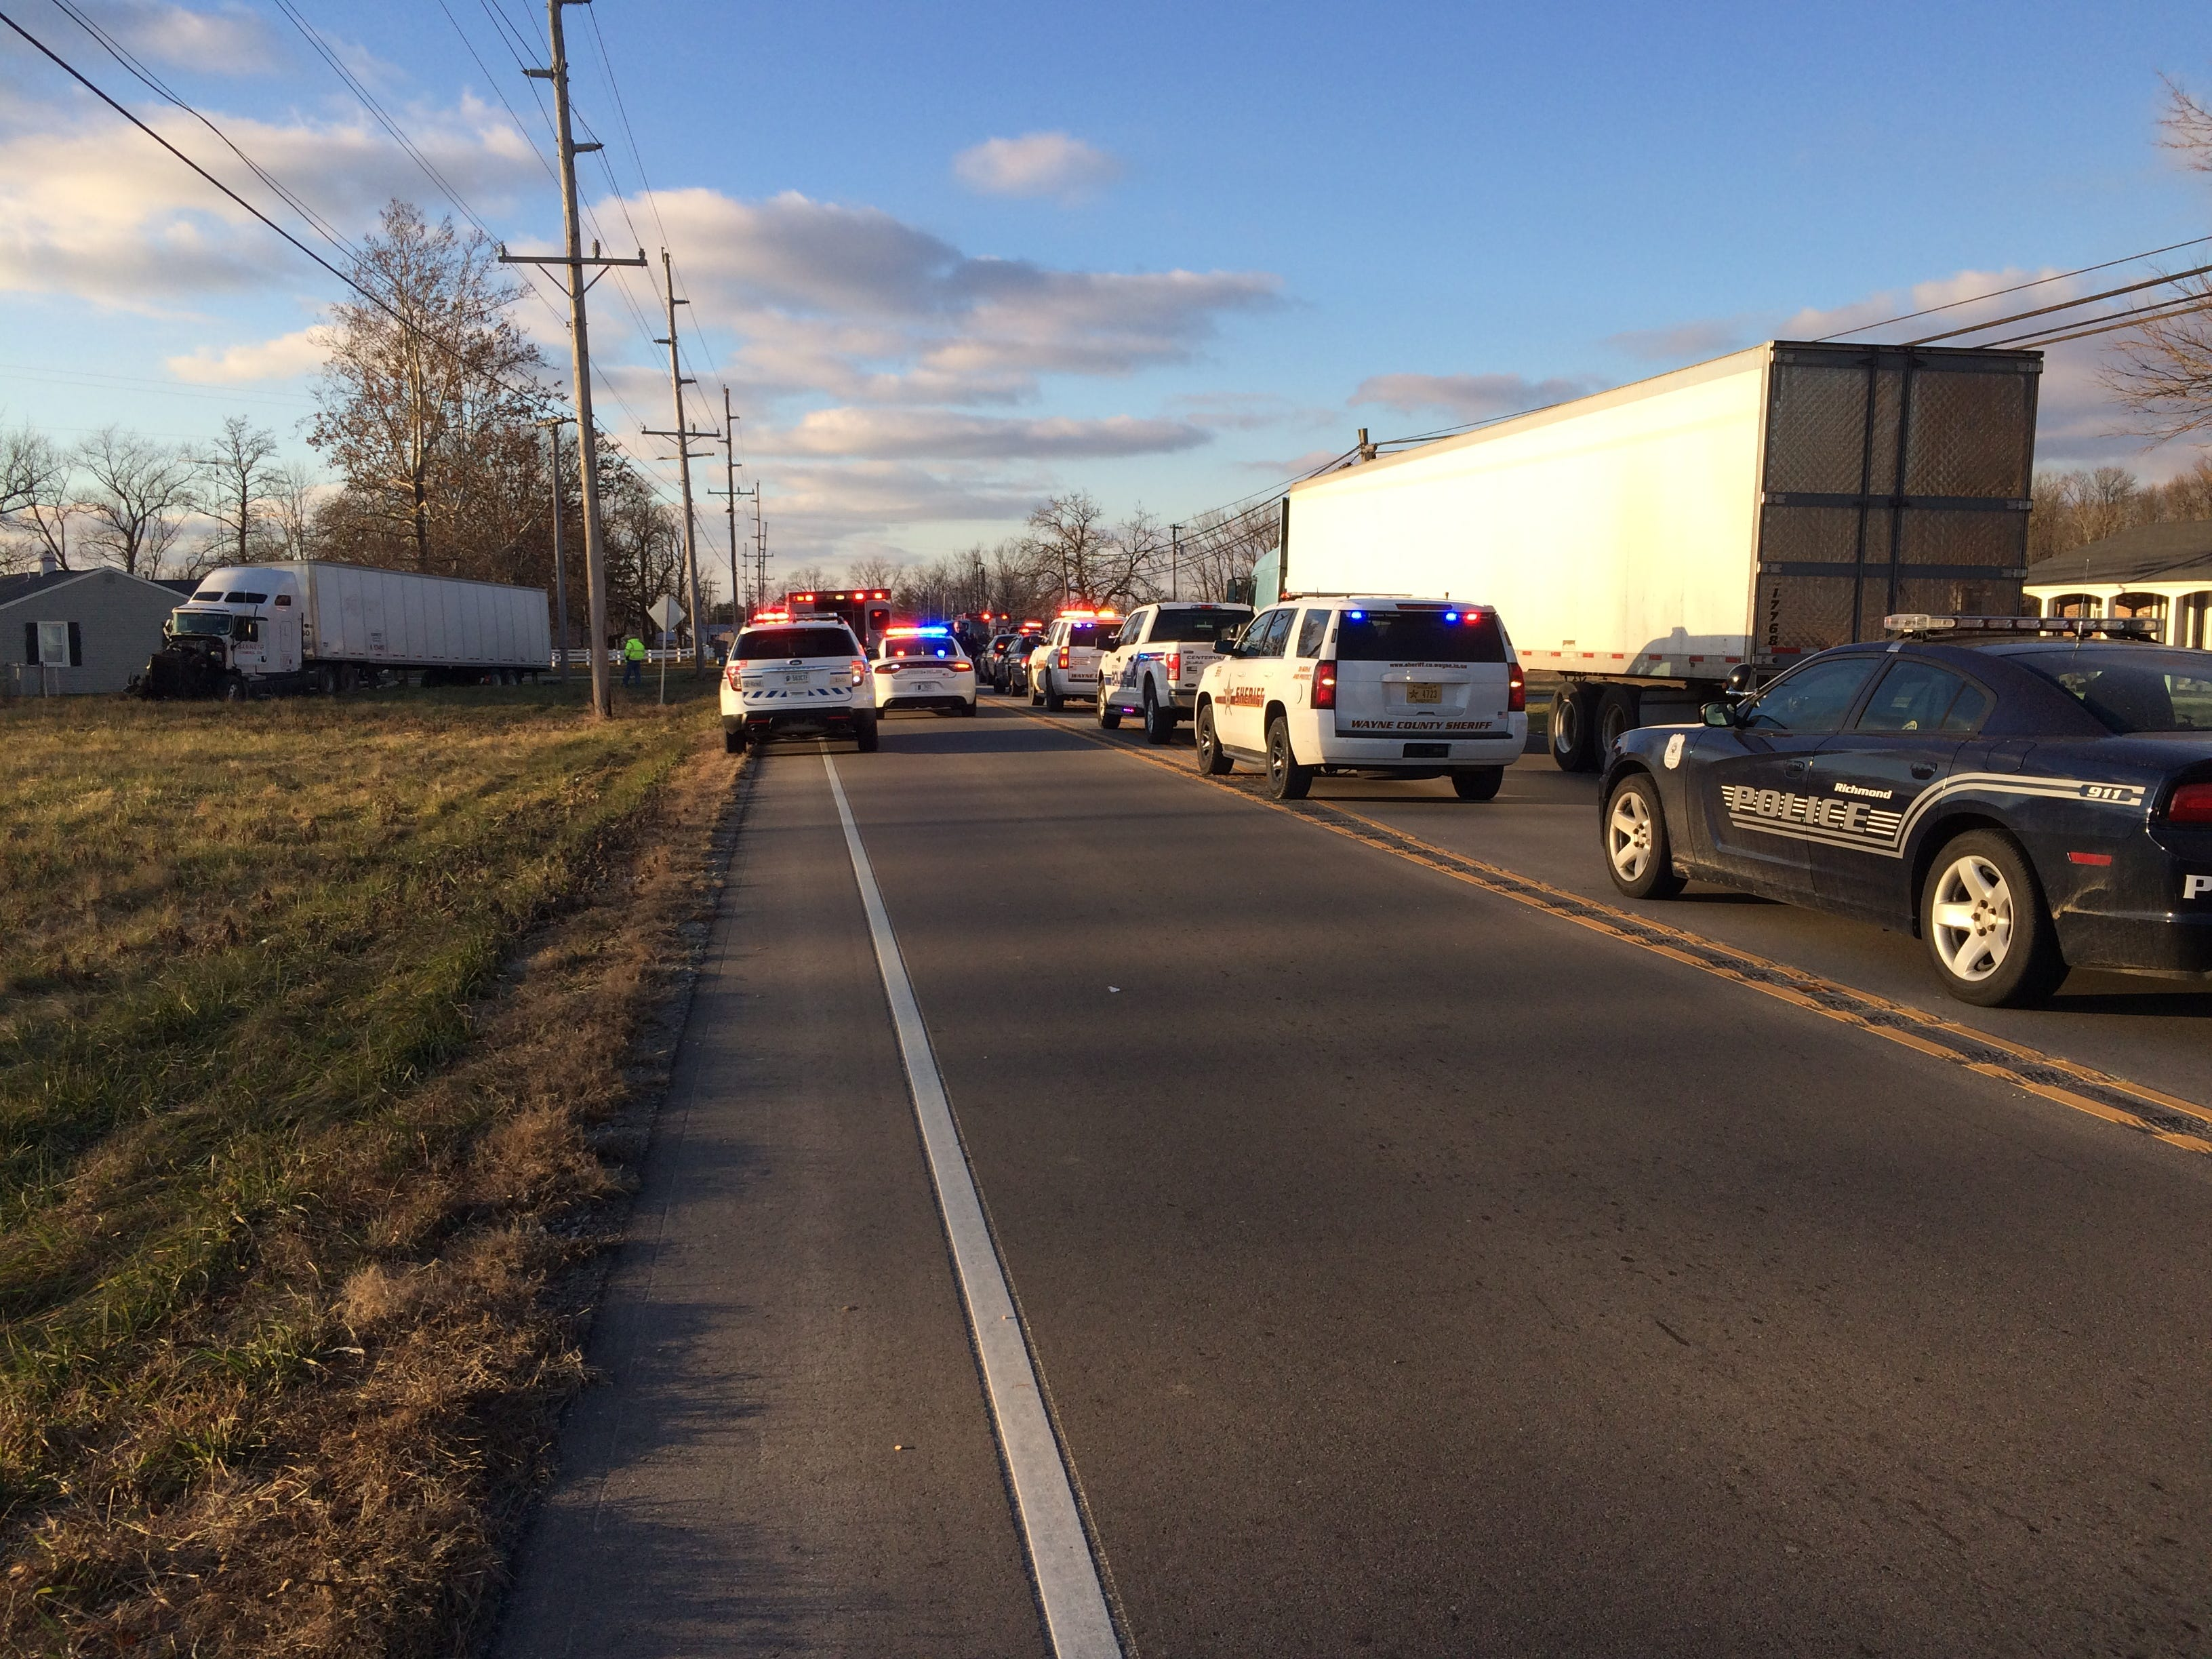 U.S. 35 was blocked Monday afternoon north of Salisbury Road after a three-vehicle accident.